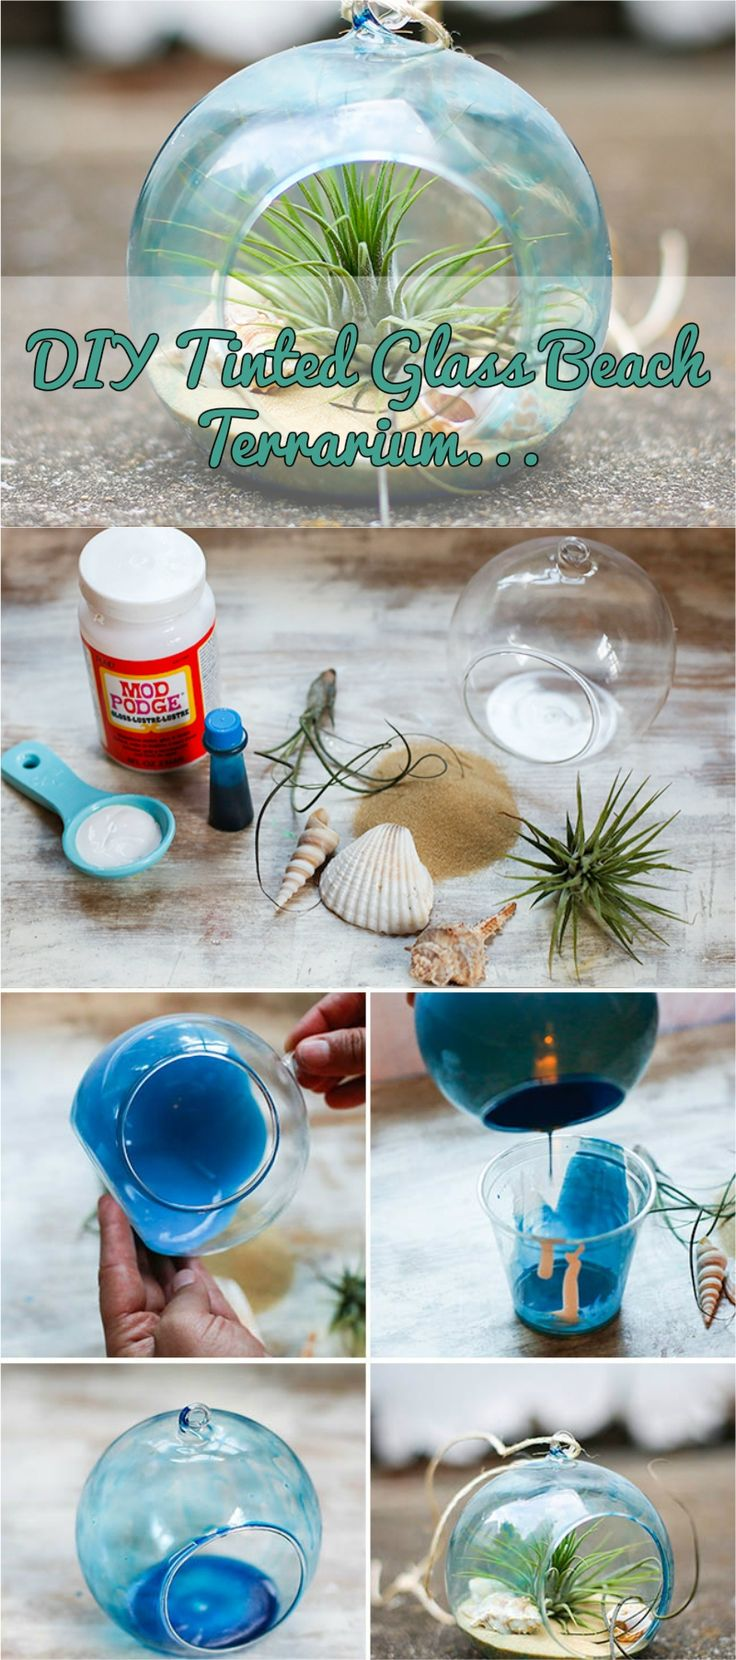 DIY Tinted Glass Beach Terrarium #diy #homedecor